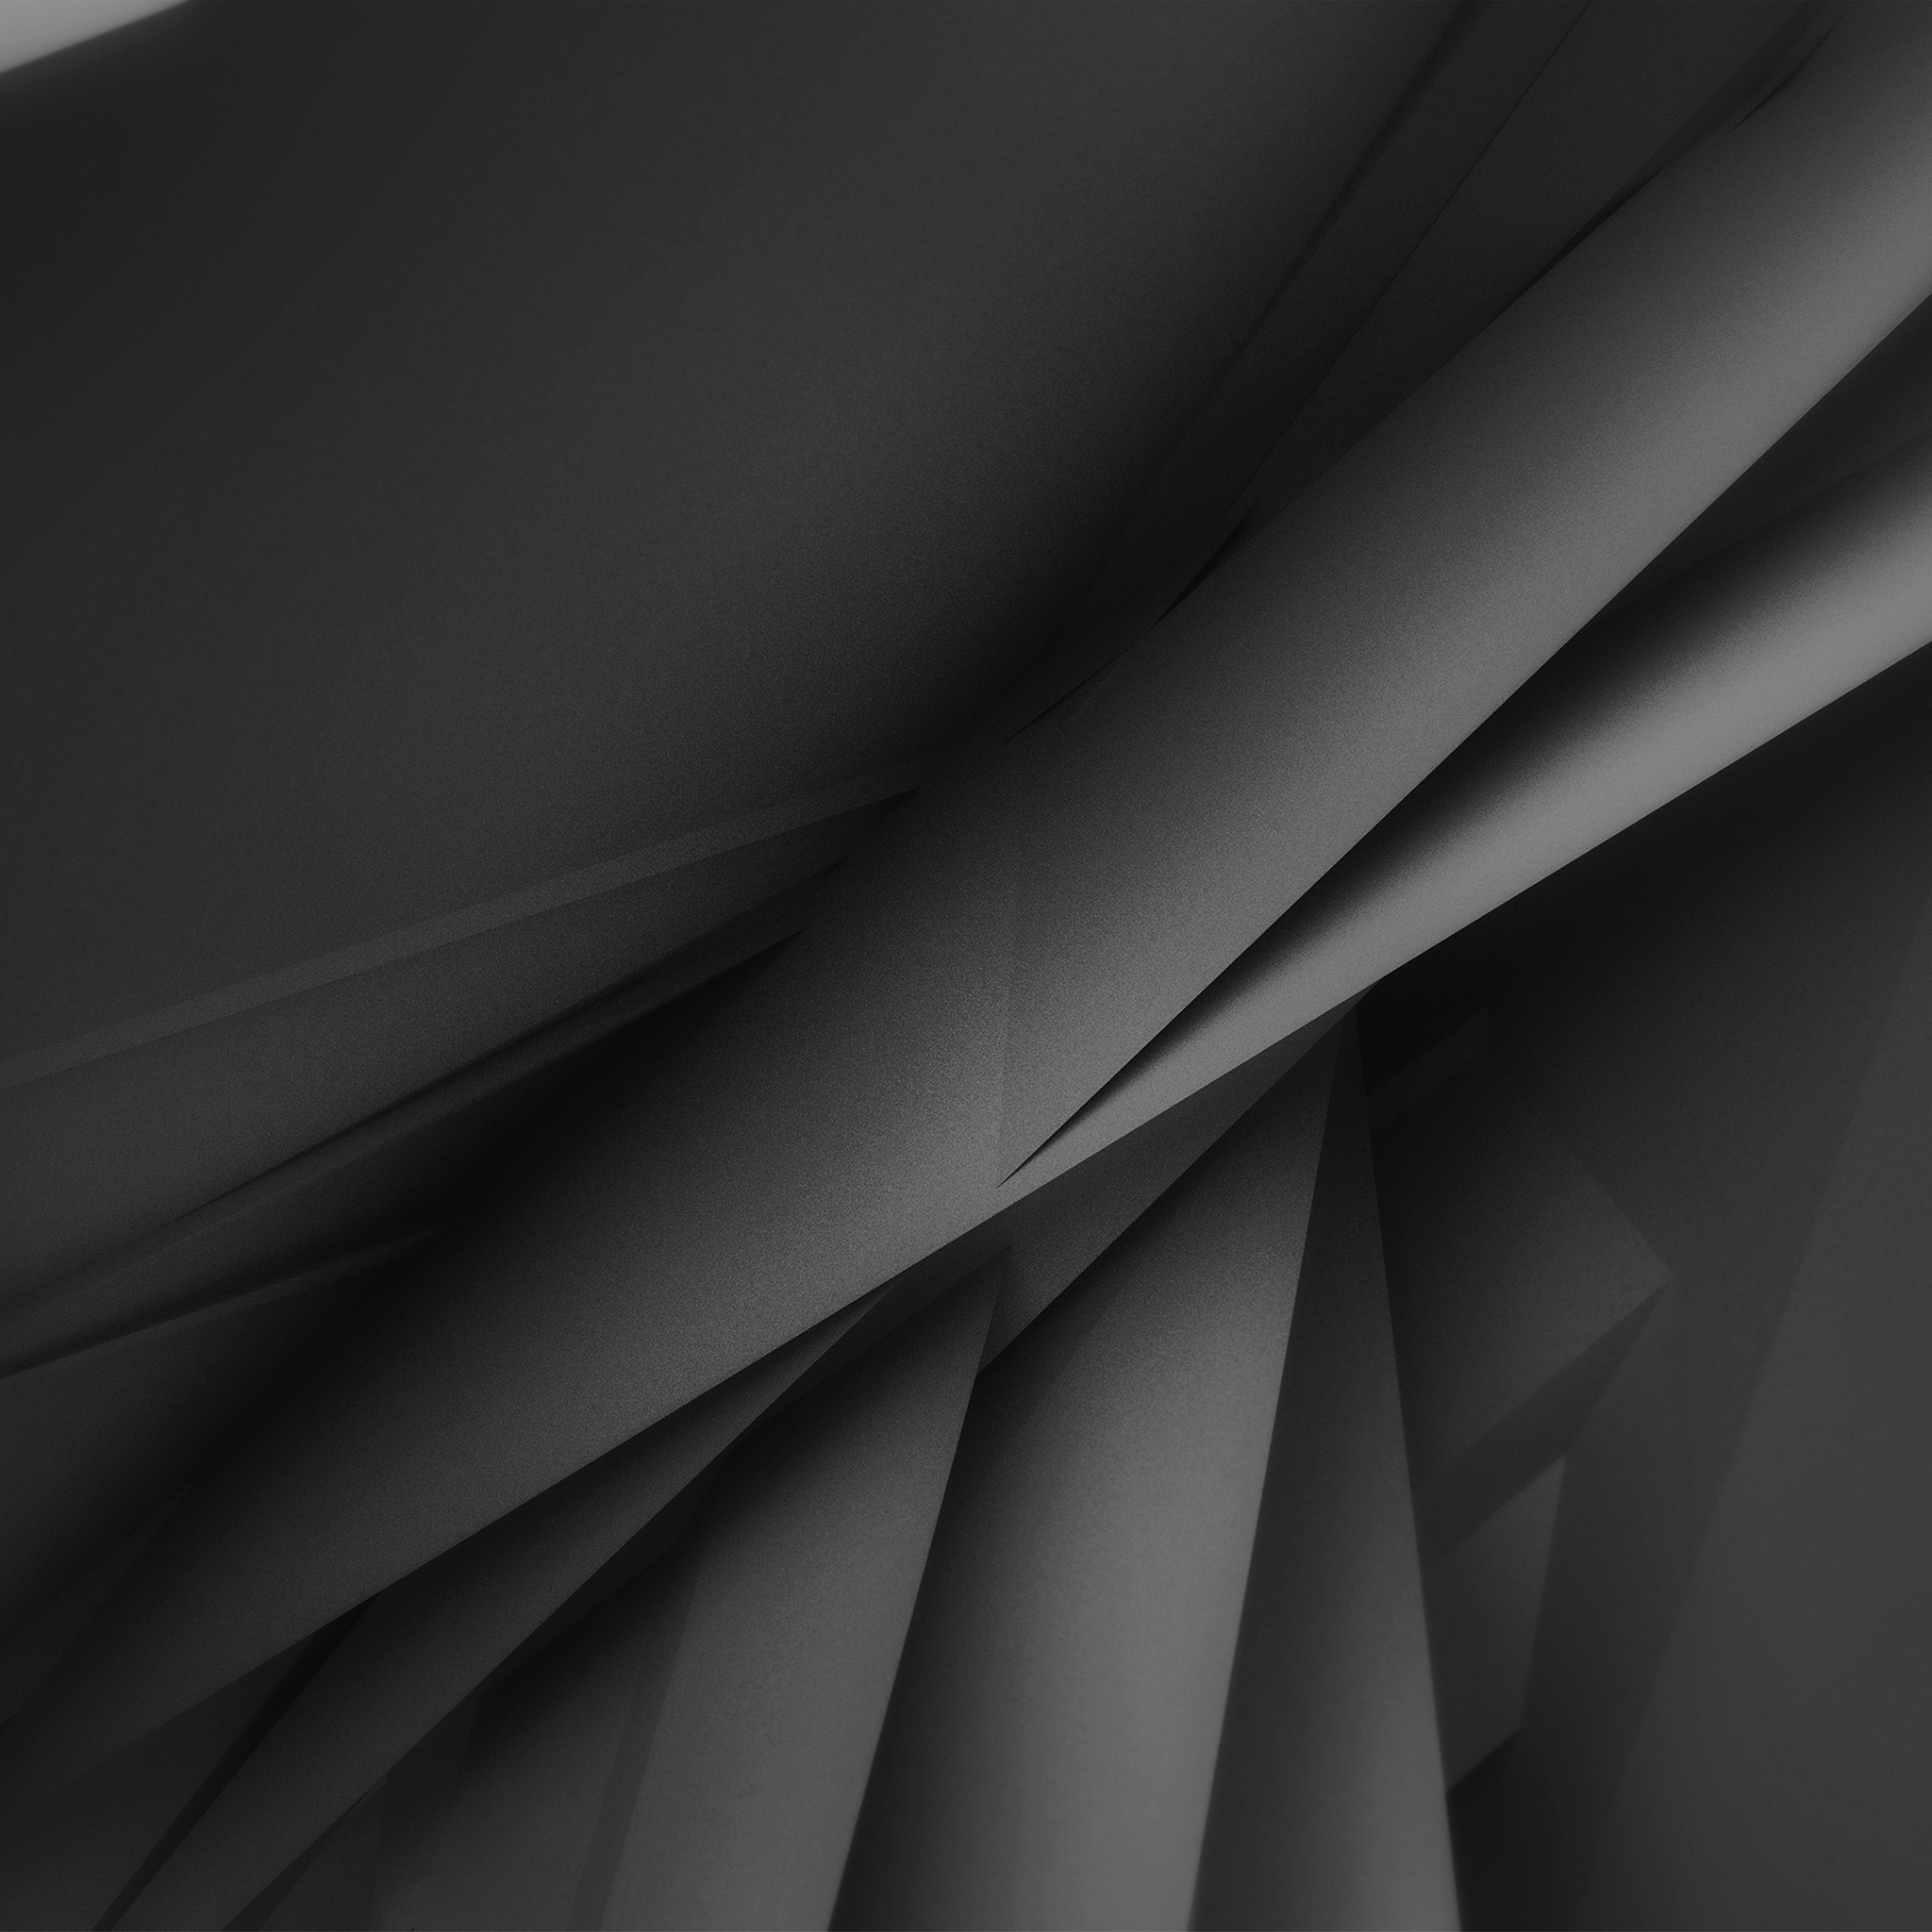 3840x1080 Wallpaper Classic Car Vs30 Abstract Background Line Shape Gray Minimal3d Pattern